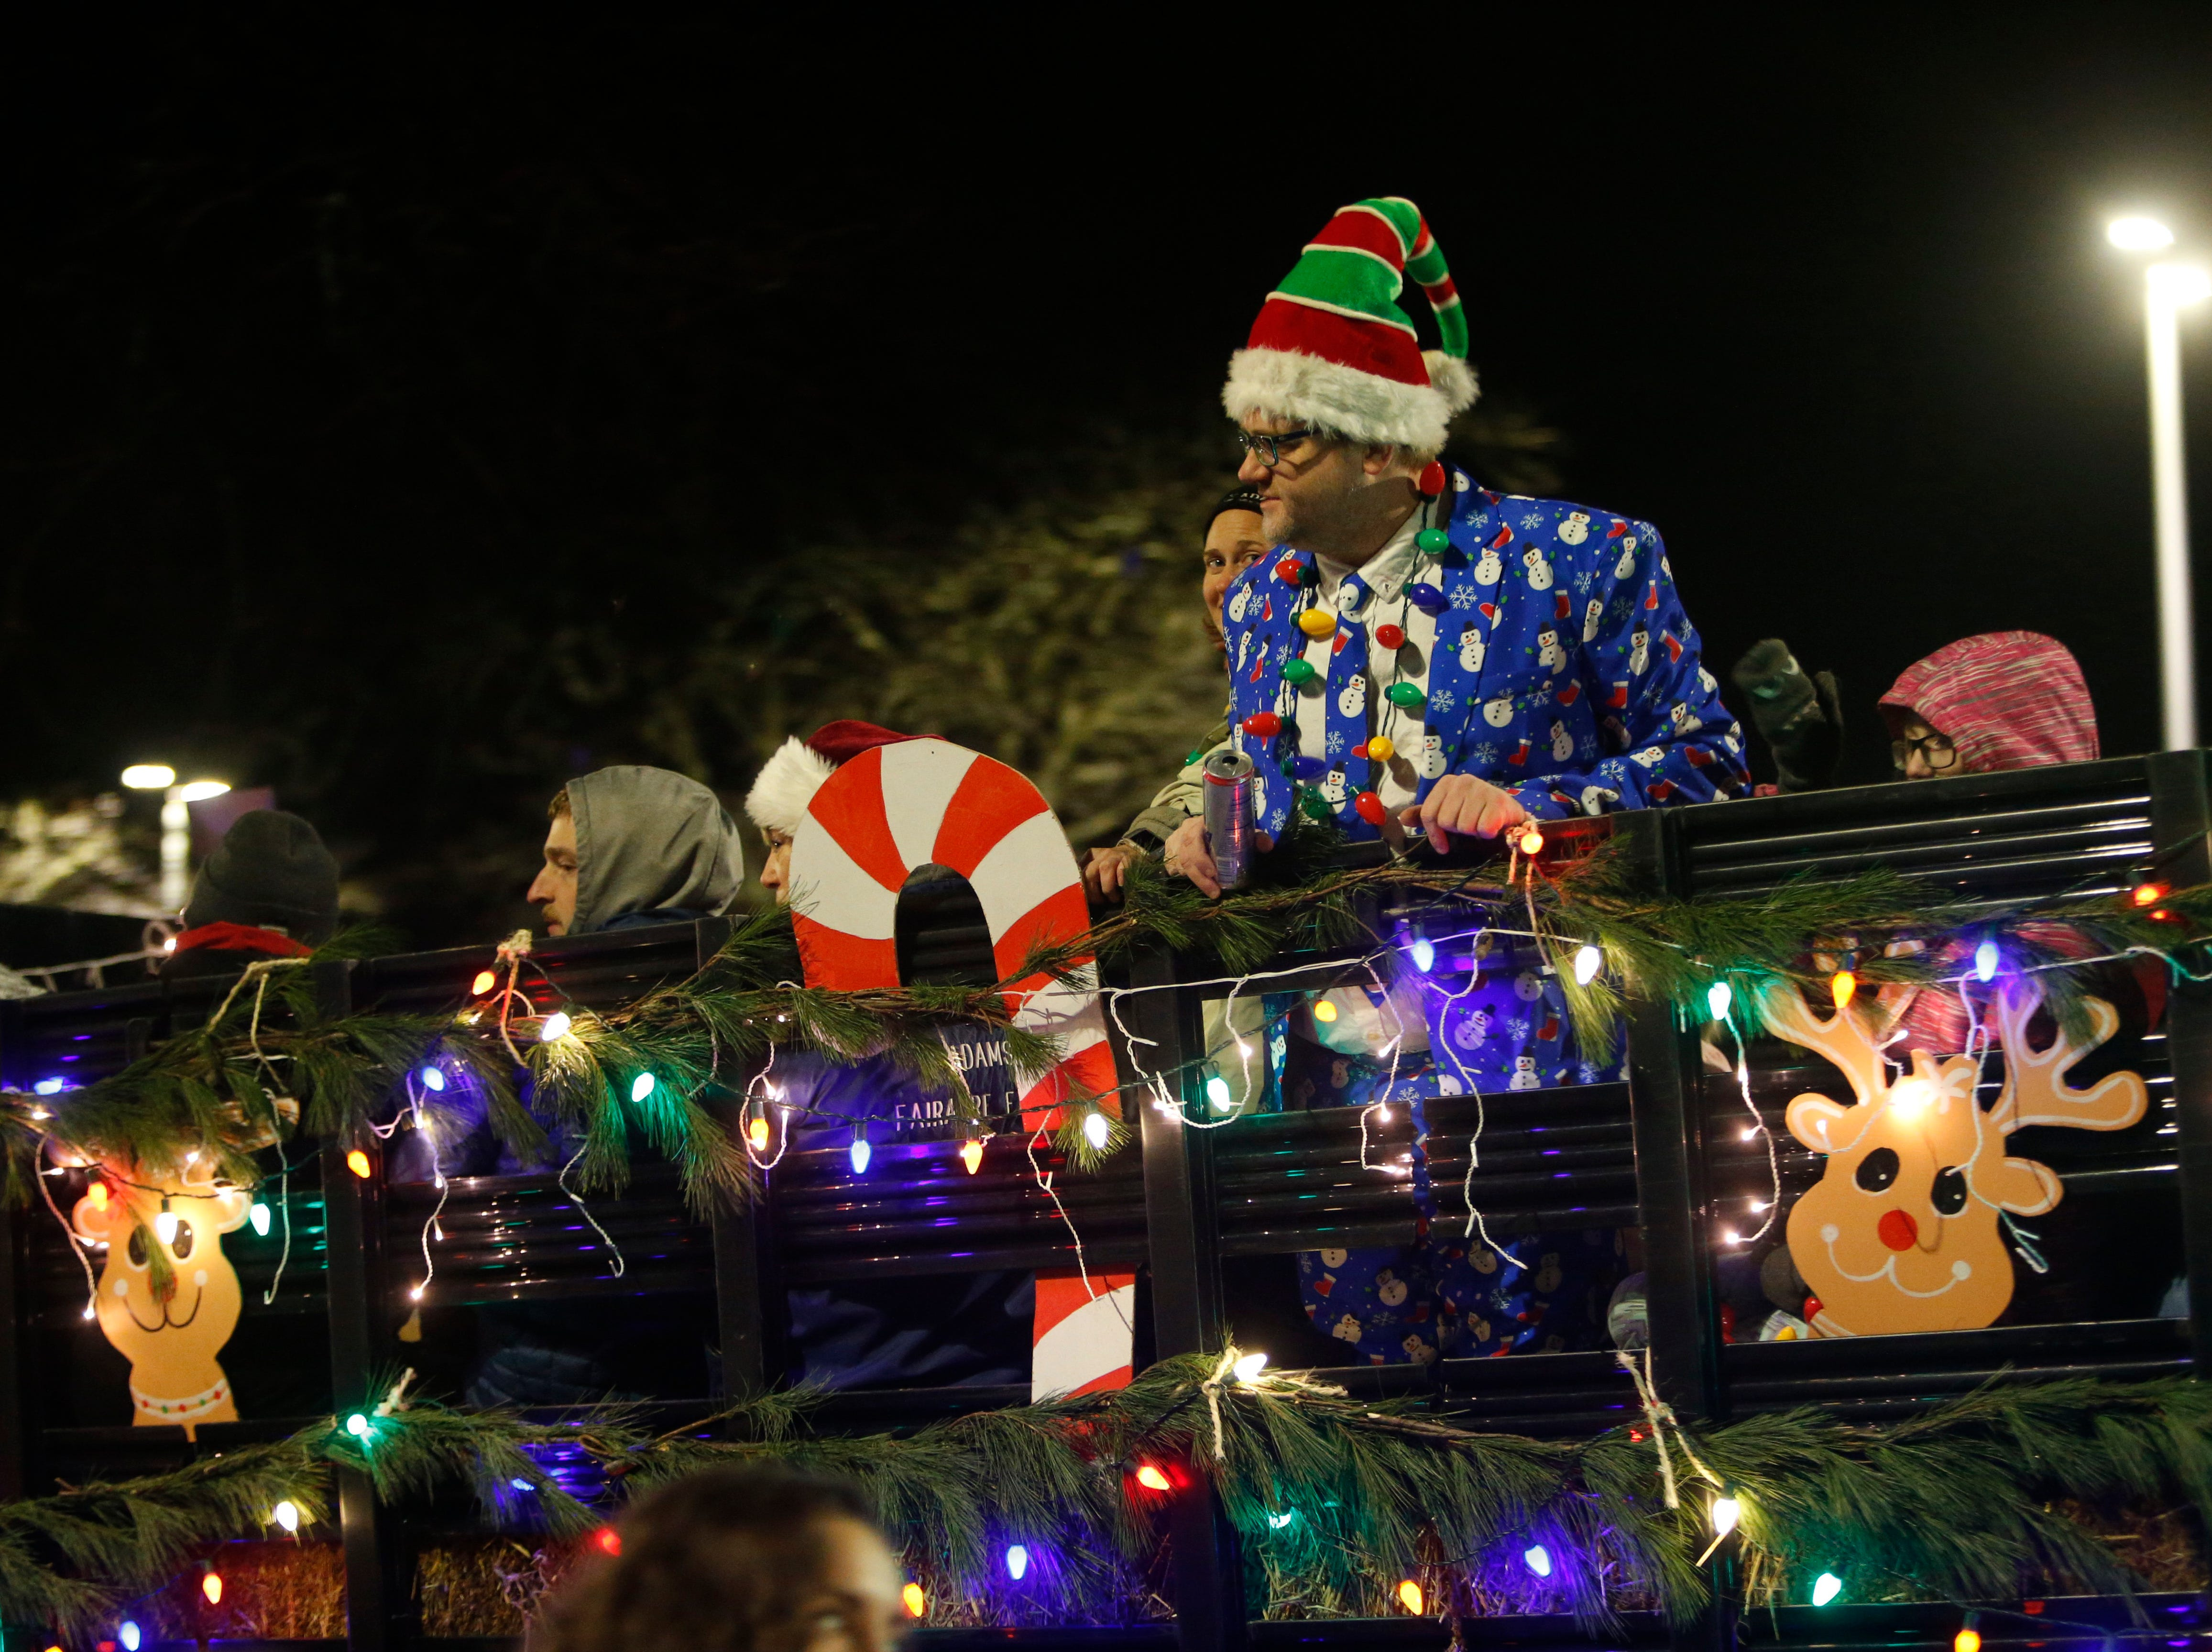 Michael Gallagher rides in the Adams Fairacre Farms truck in the Celebration of Lights Parade in the City of Poughkeepsie on November 30, 2018.